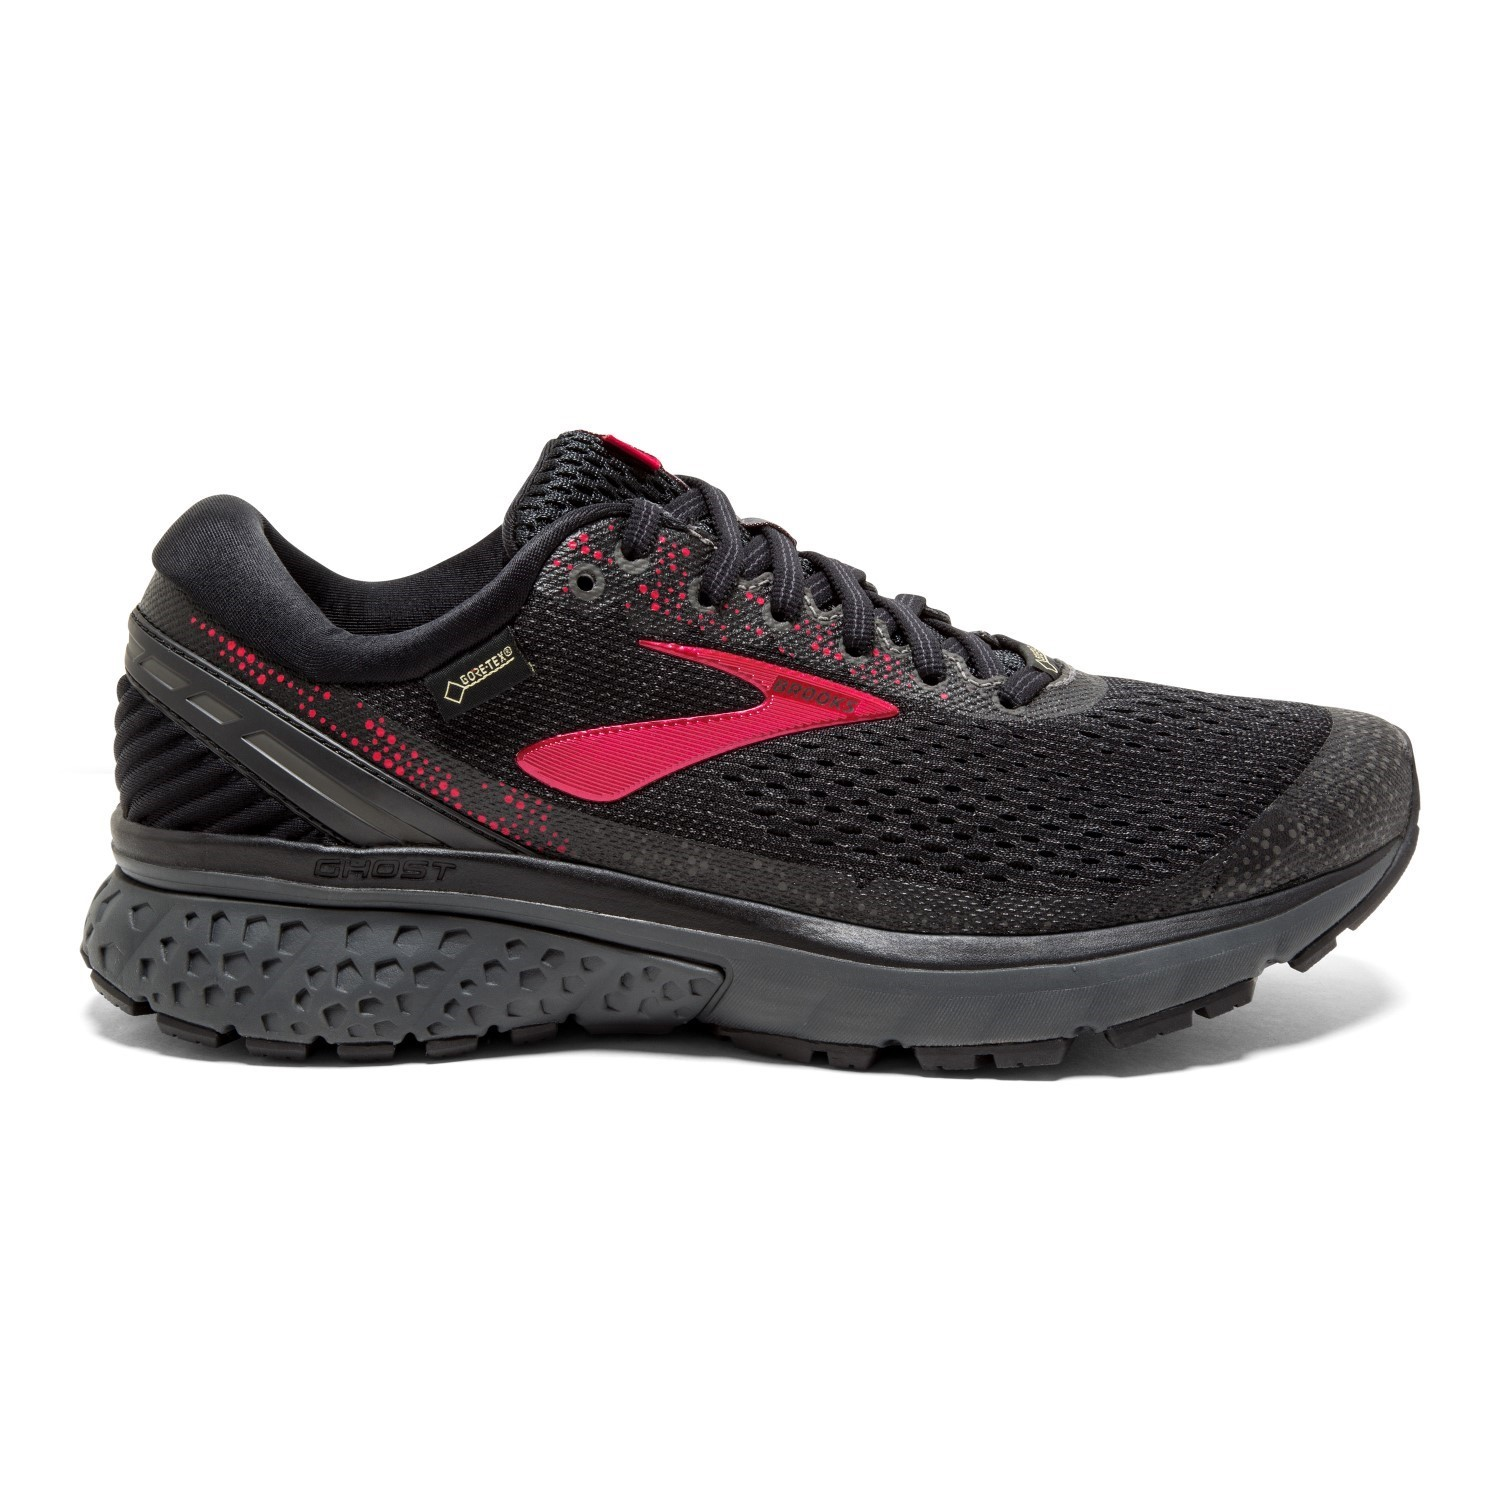 58f773622e725e Brooks GTX Ghost 11 - Womens Trail Running Shoes - Black/Pink/Ebony ...